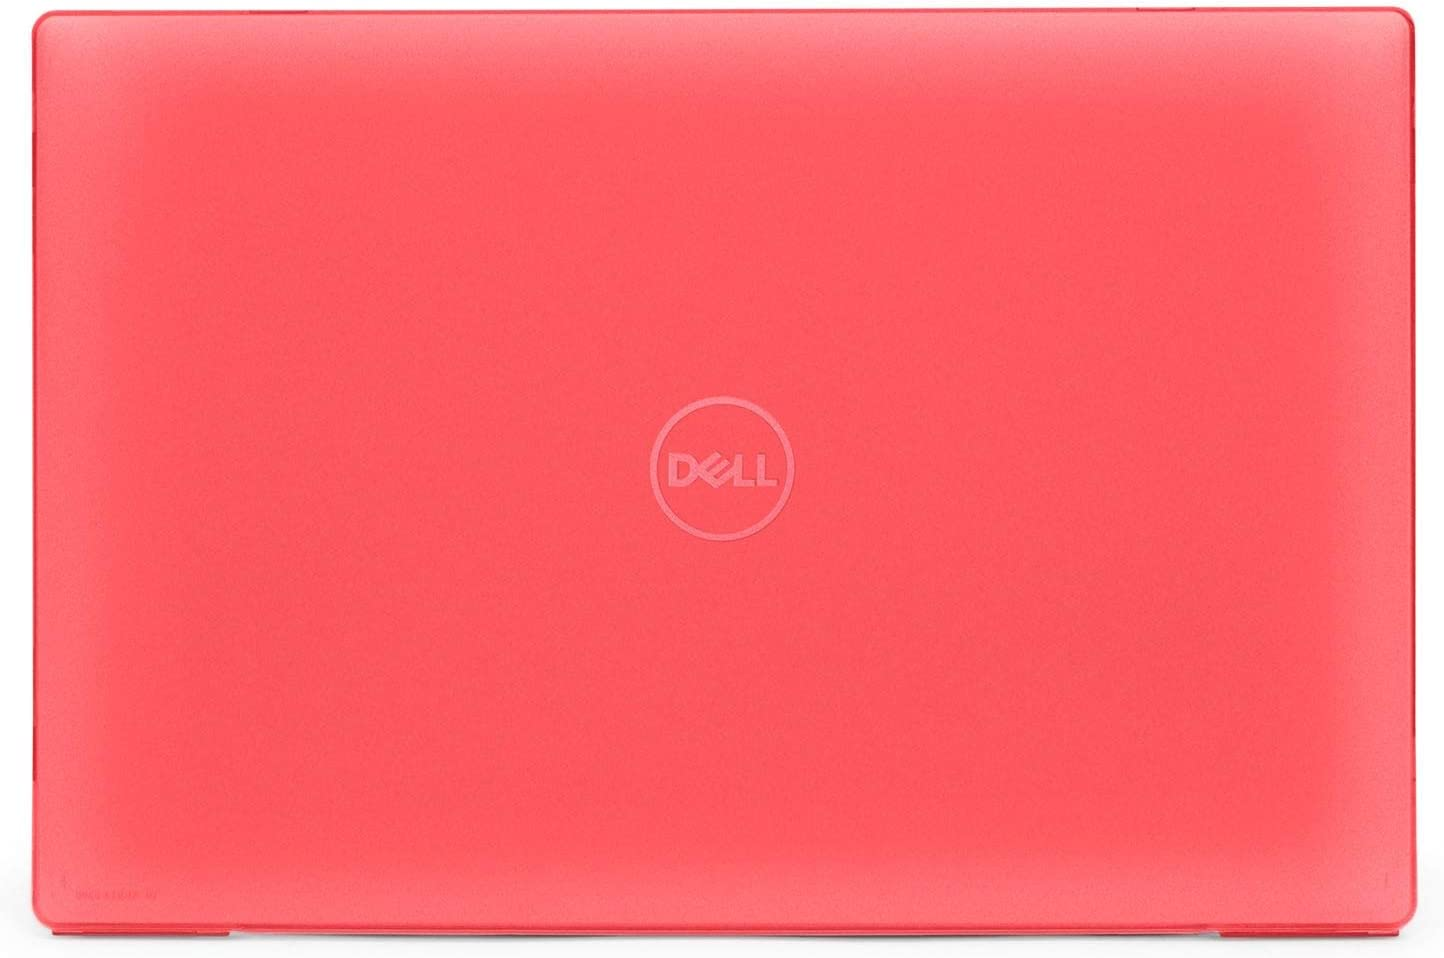 "mCover Hard Shell Case for 2020 13.4"" Dell XPS 13 9300 (non-2in1) Models (Red)"